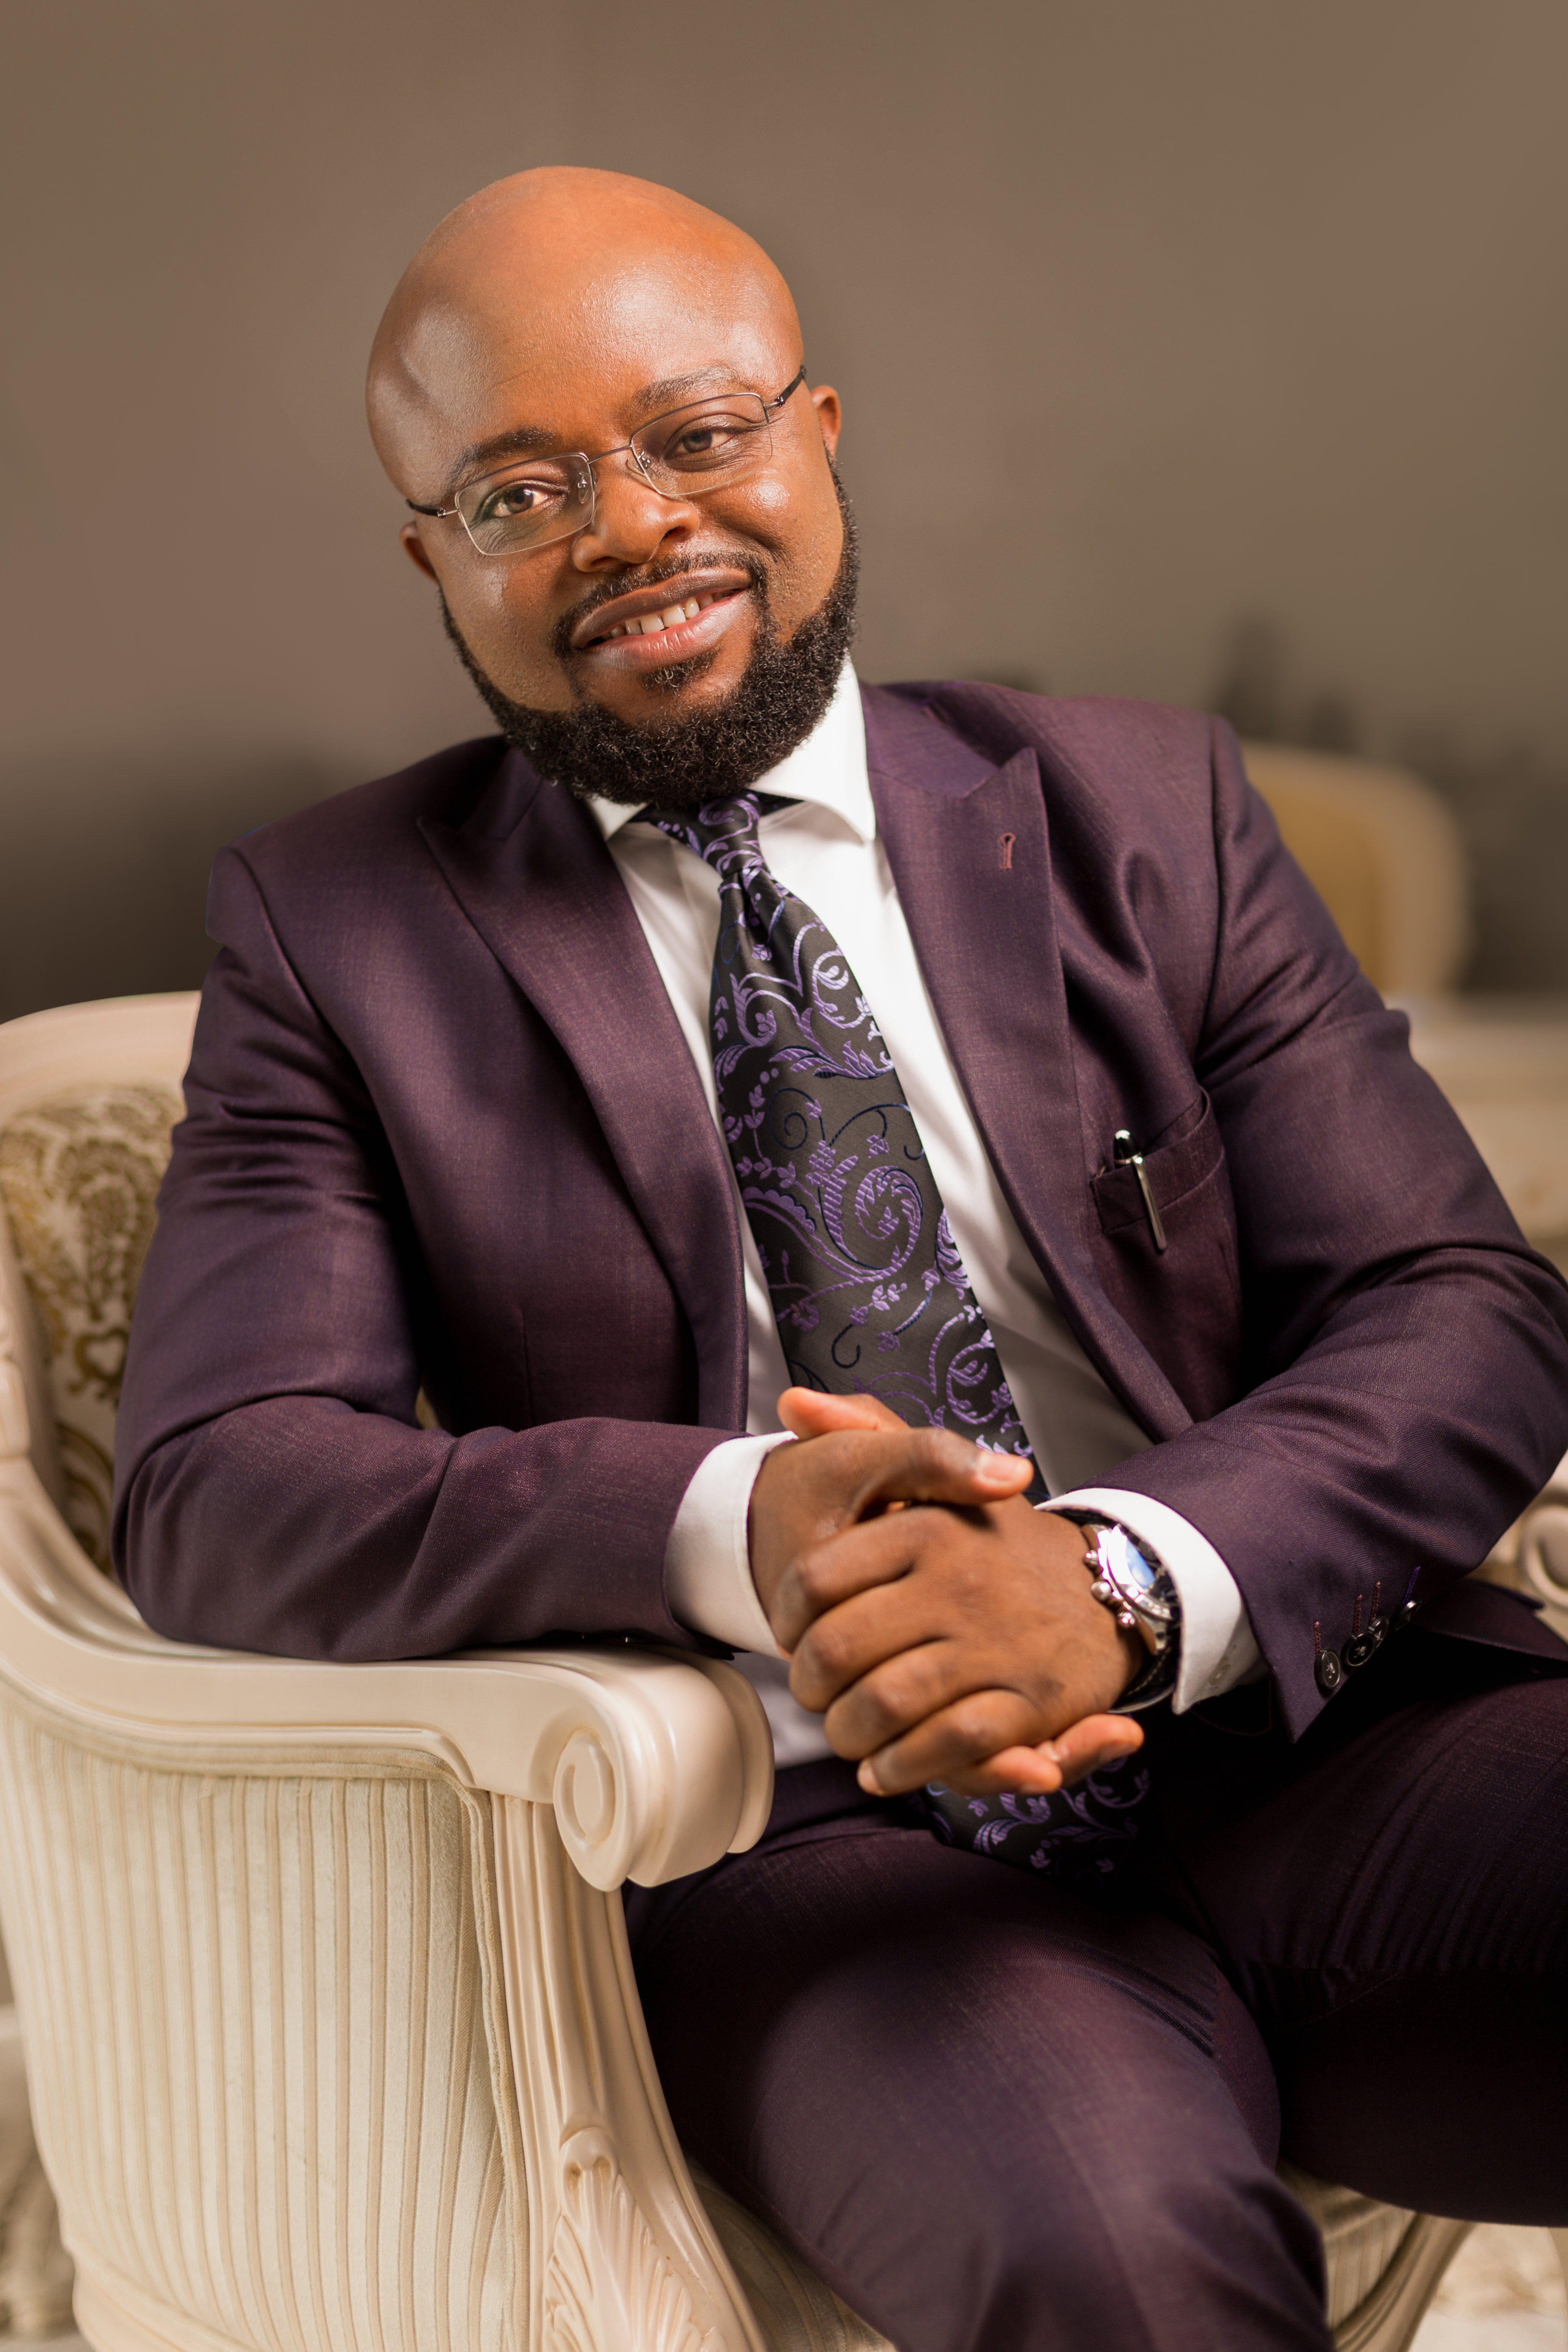 Ifeanyi Odii (Record Label CEO) – Business mogul Ifeanyi Odii launches Ultimus Entertainment